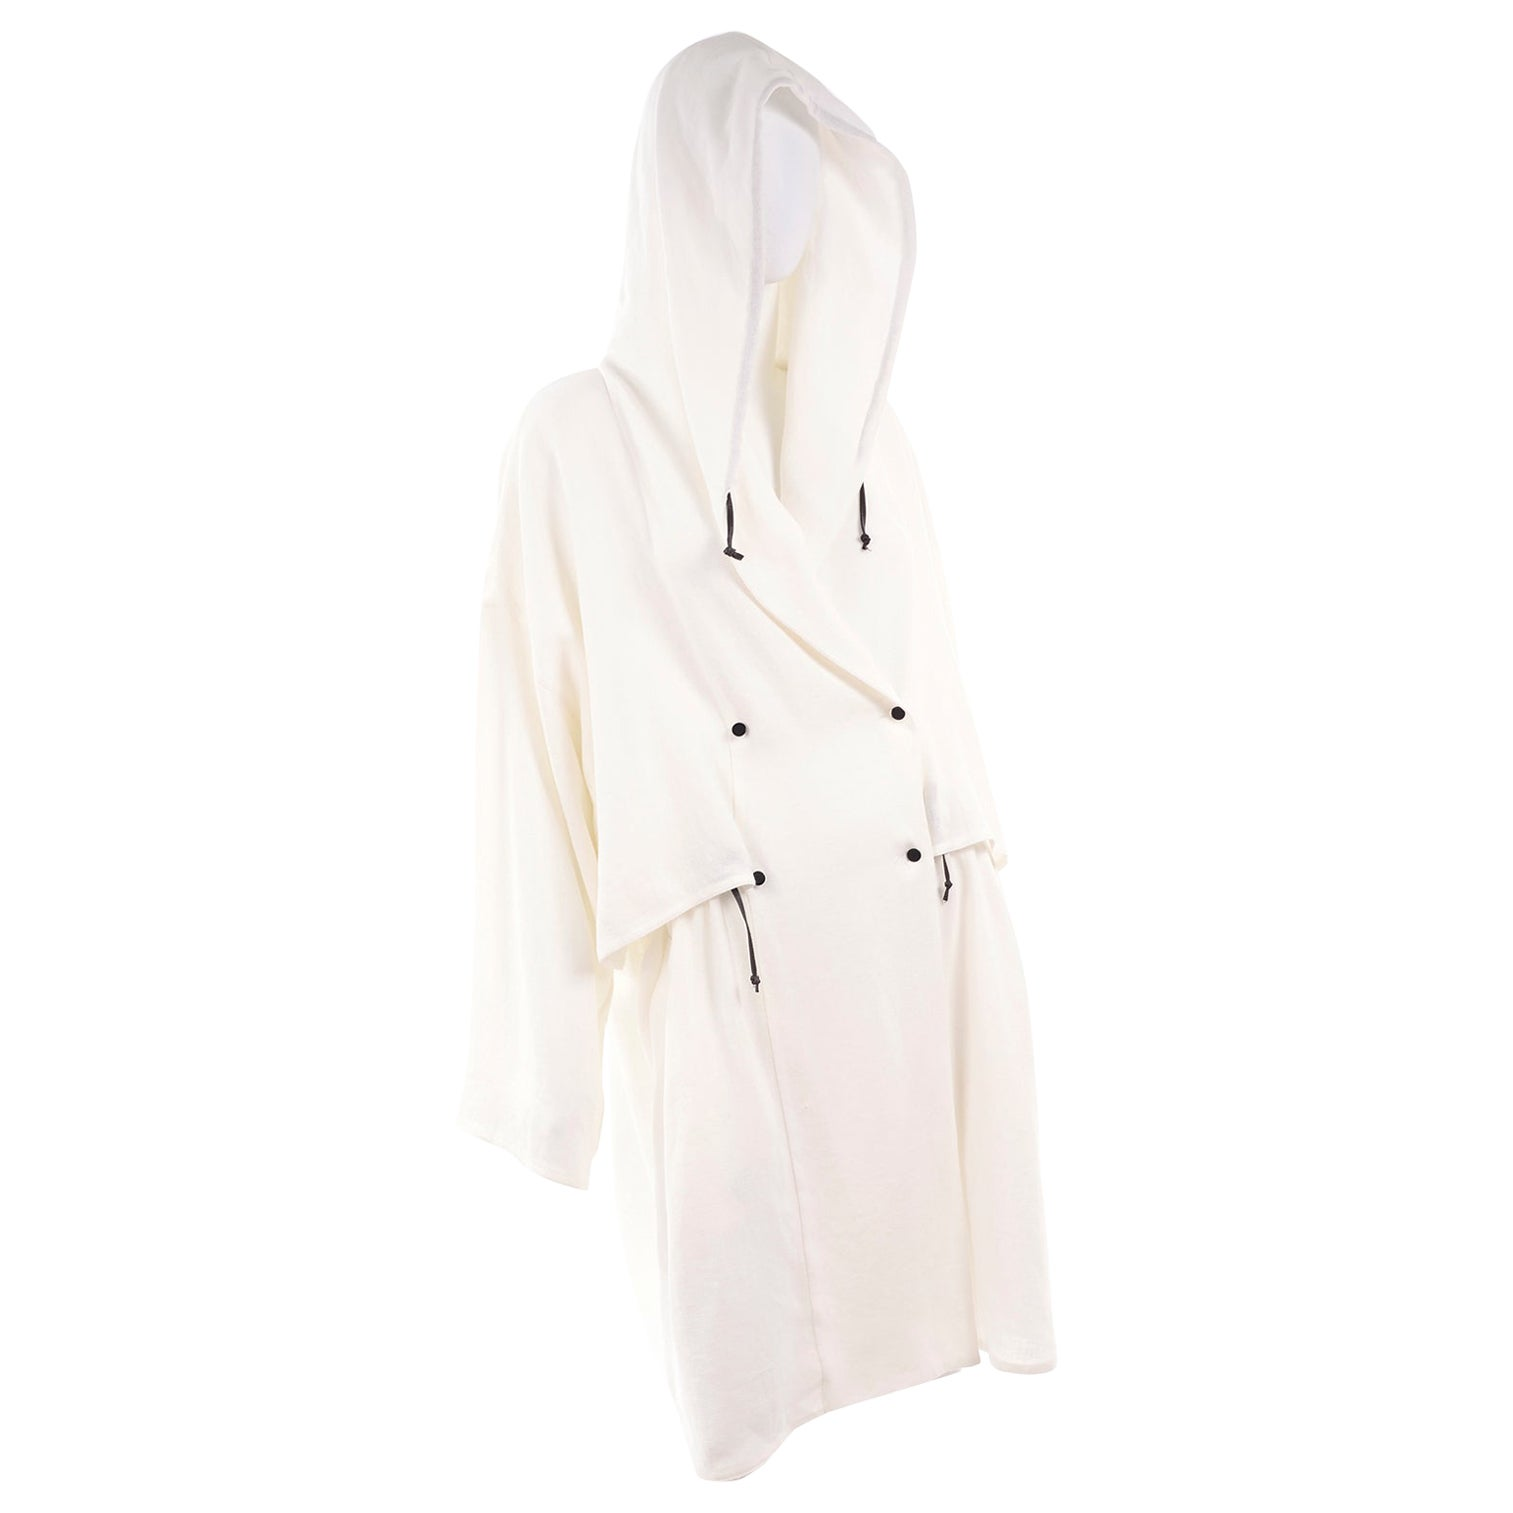 Deadstock New White Linen Dusan Coat Drawstring Jacket with Hood New With Tags